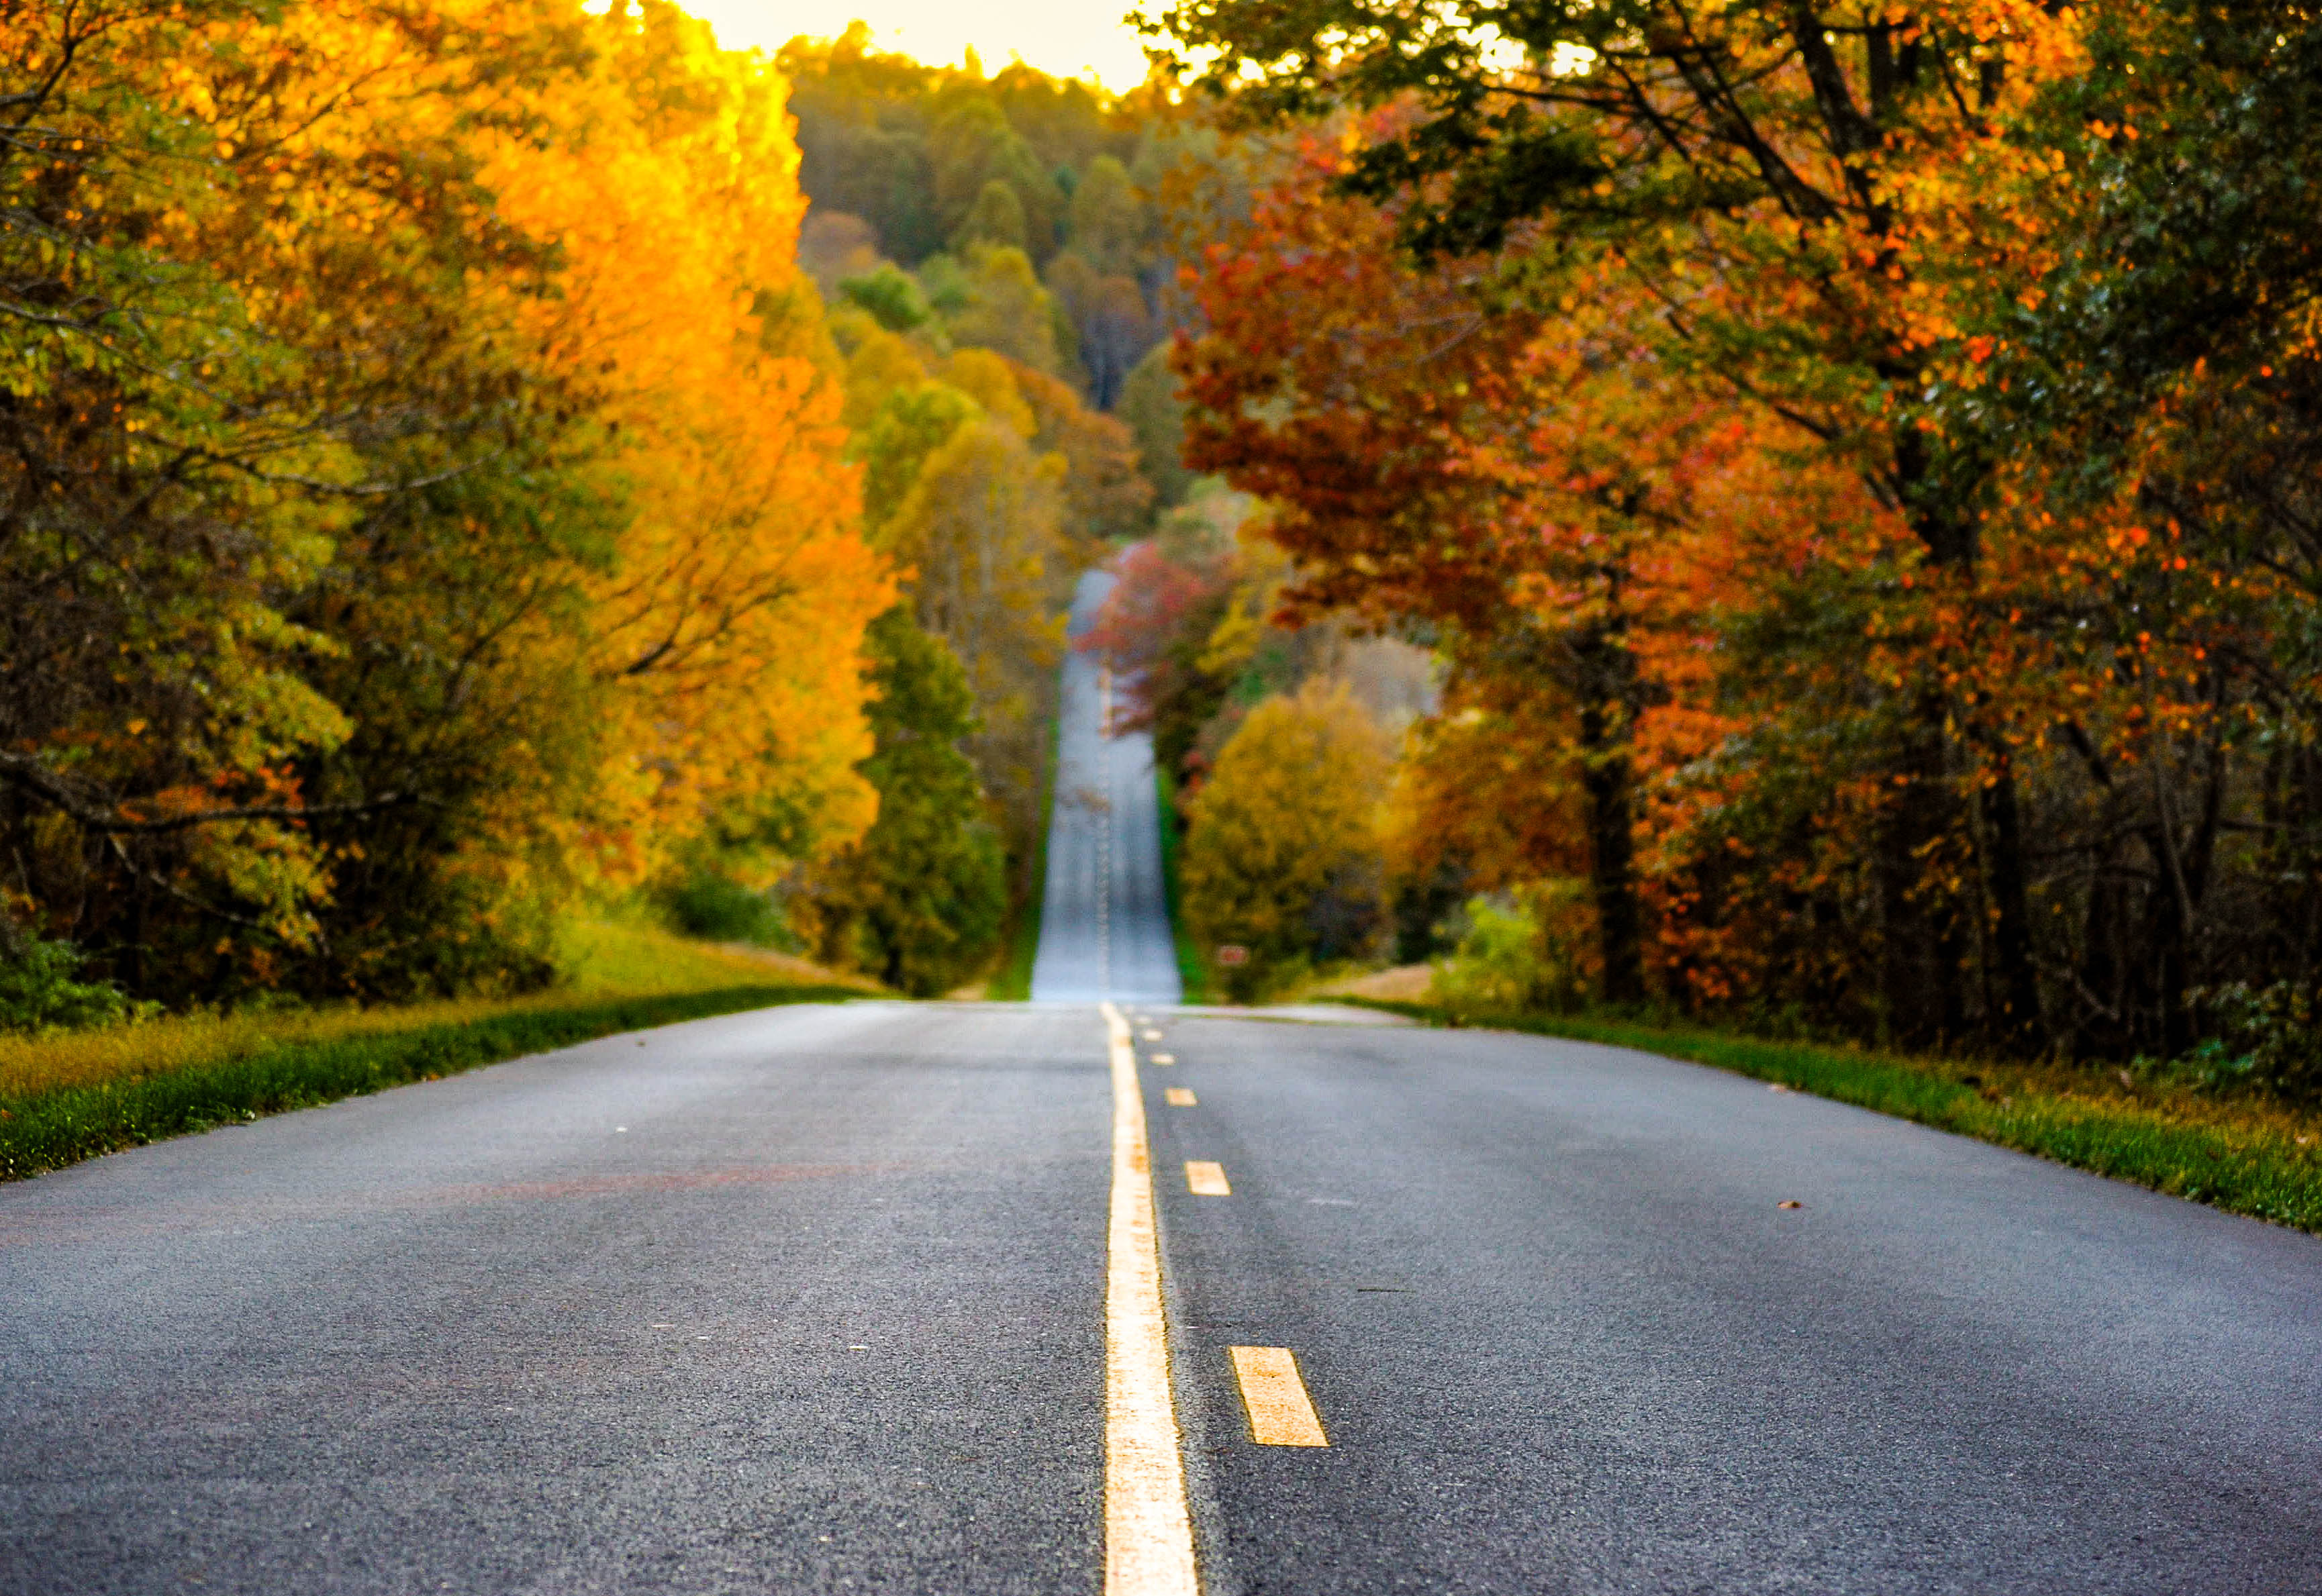 Driving the Blue Ridge Parkway - 3 Day Itinerary for America's Favorite Road Trip